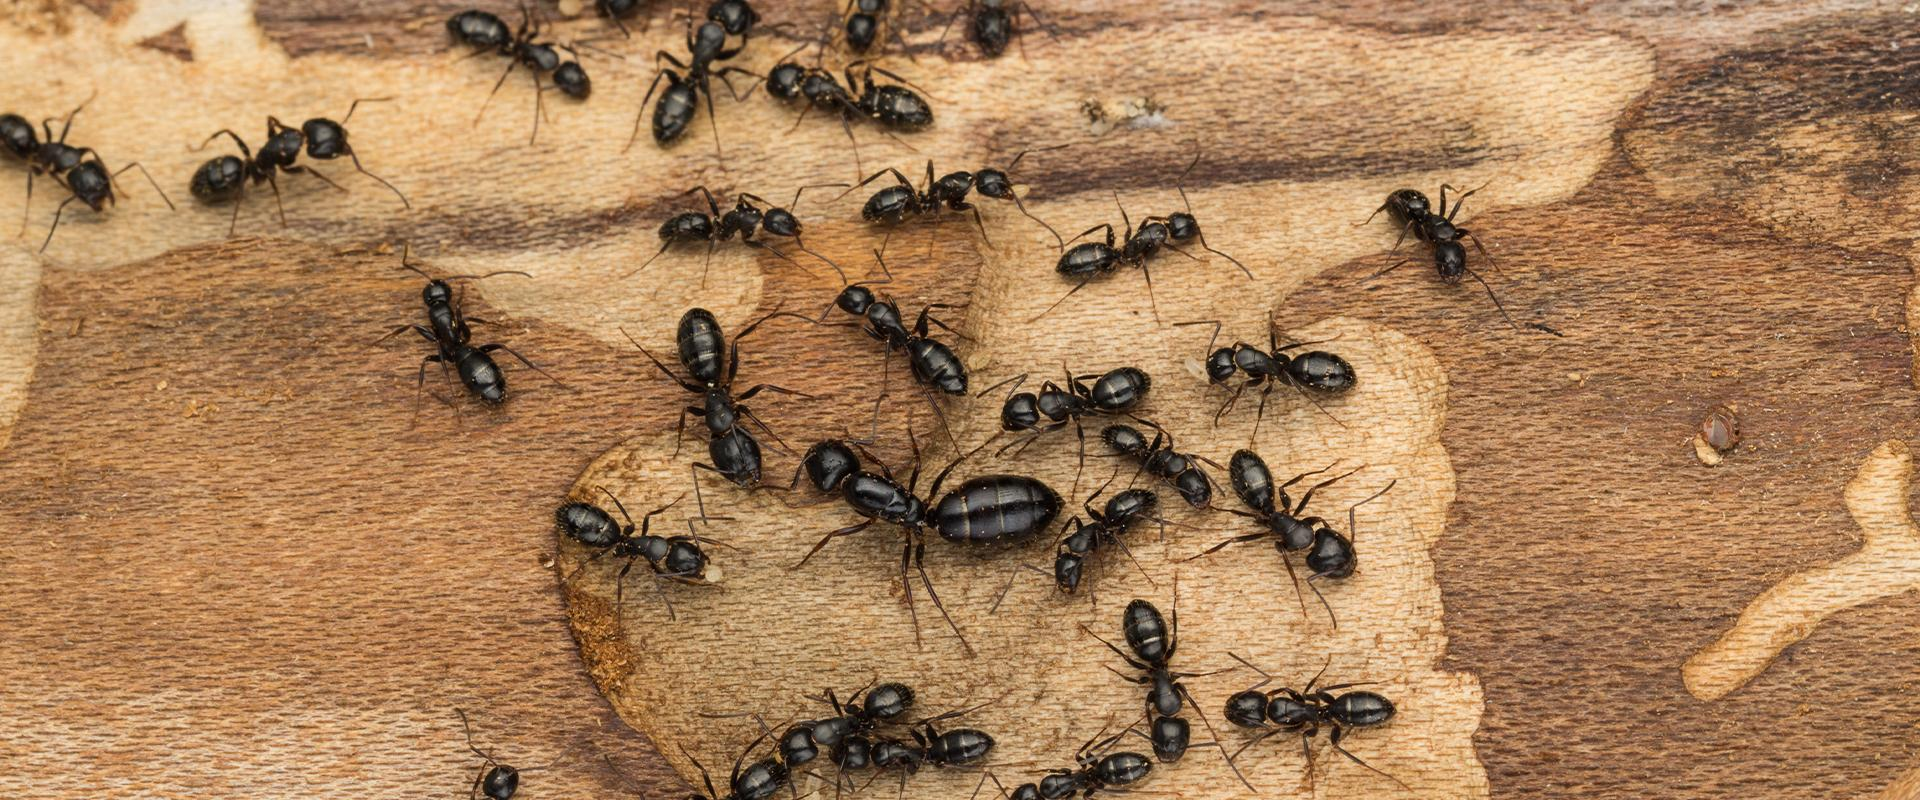 close up of carpenter ants